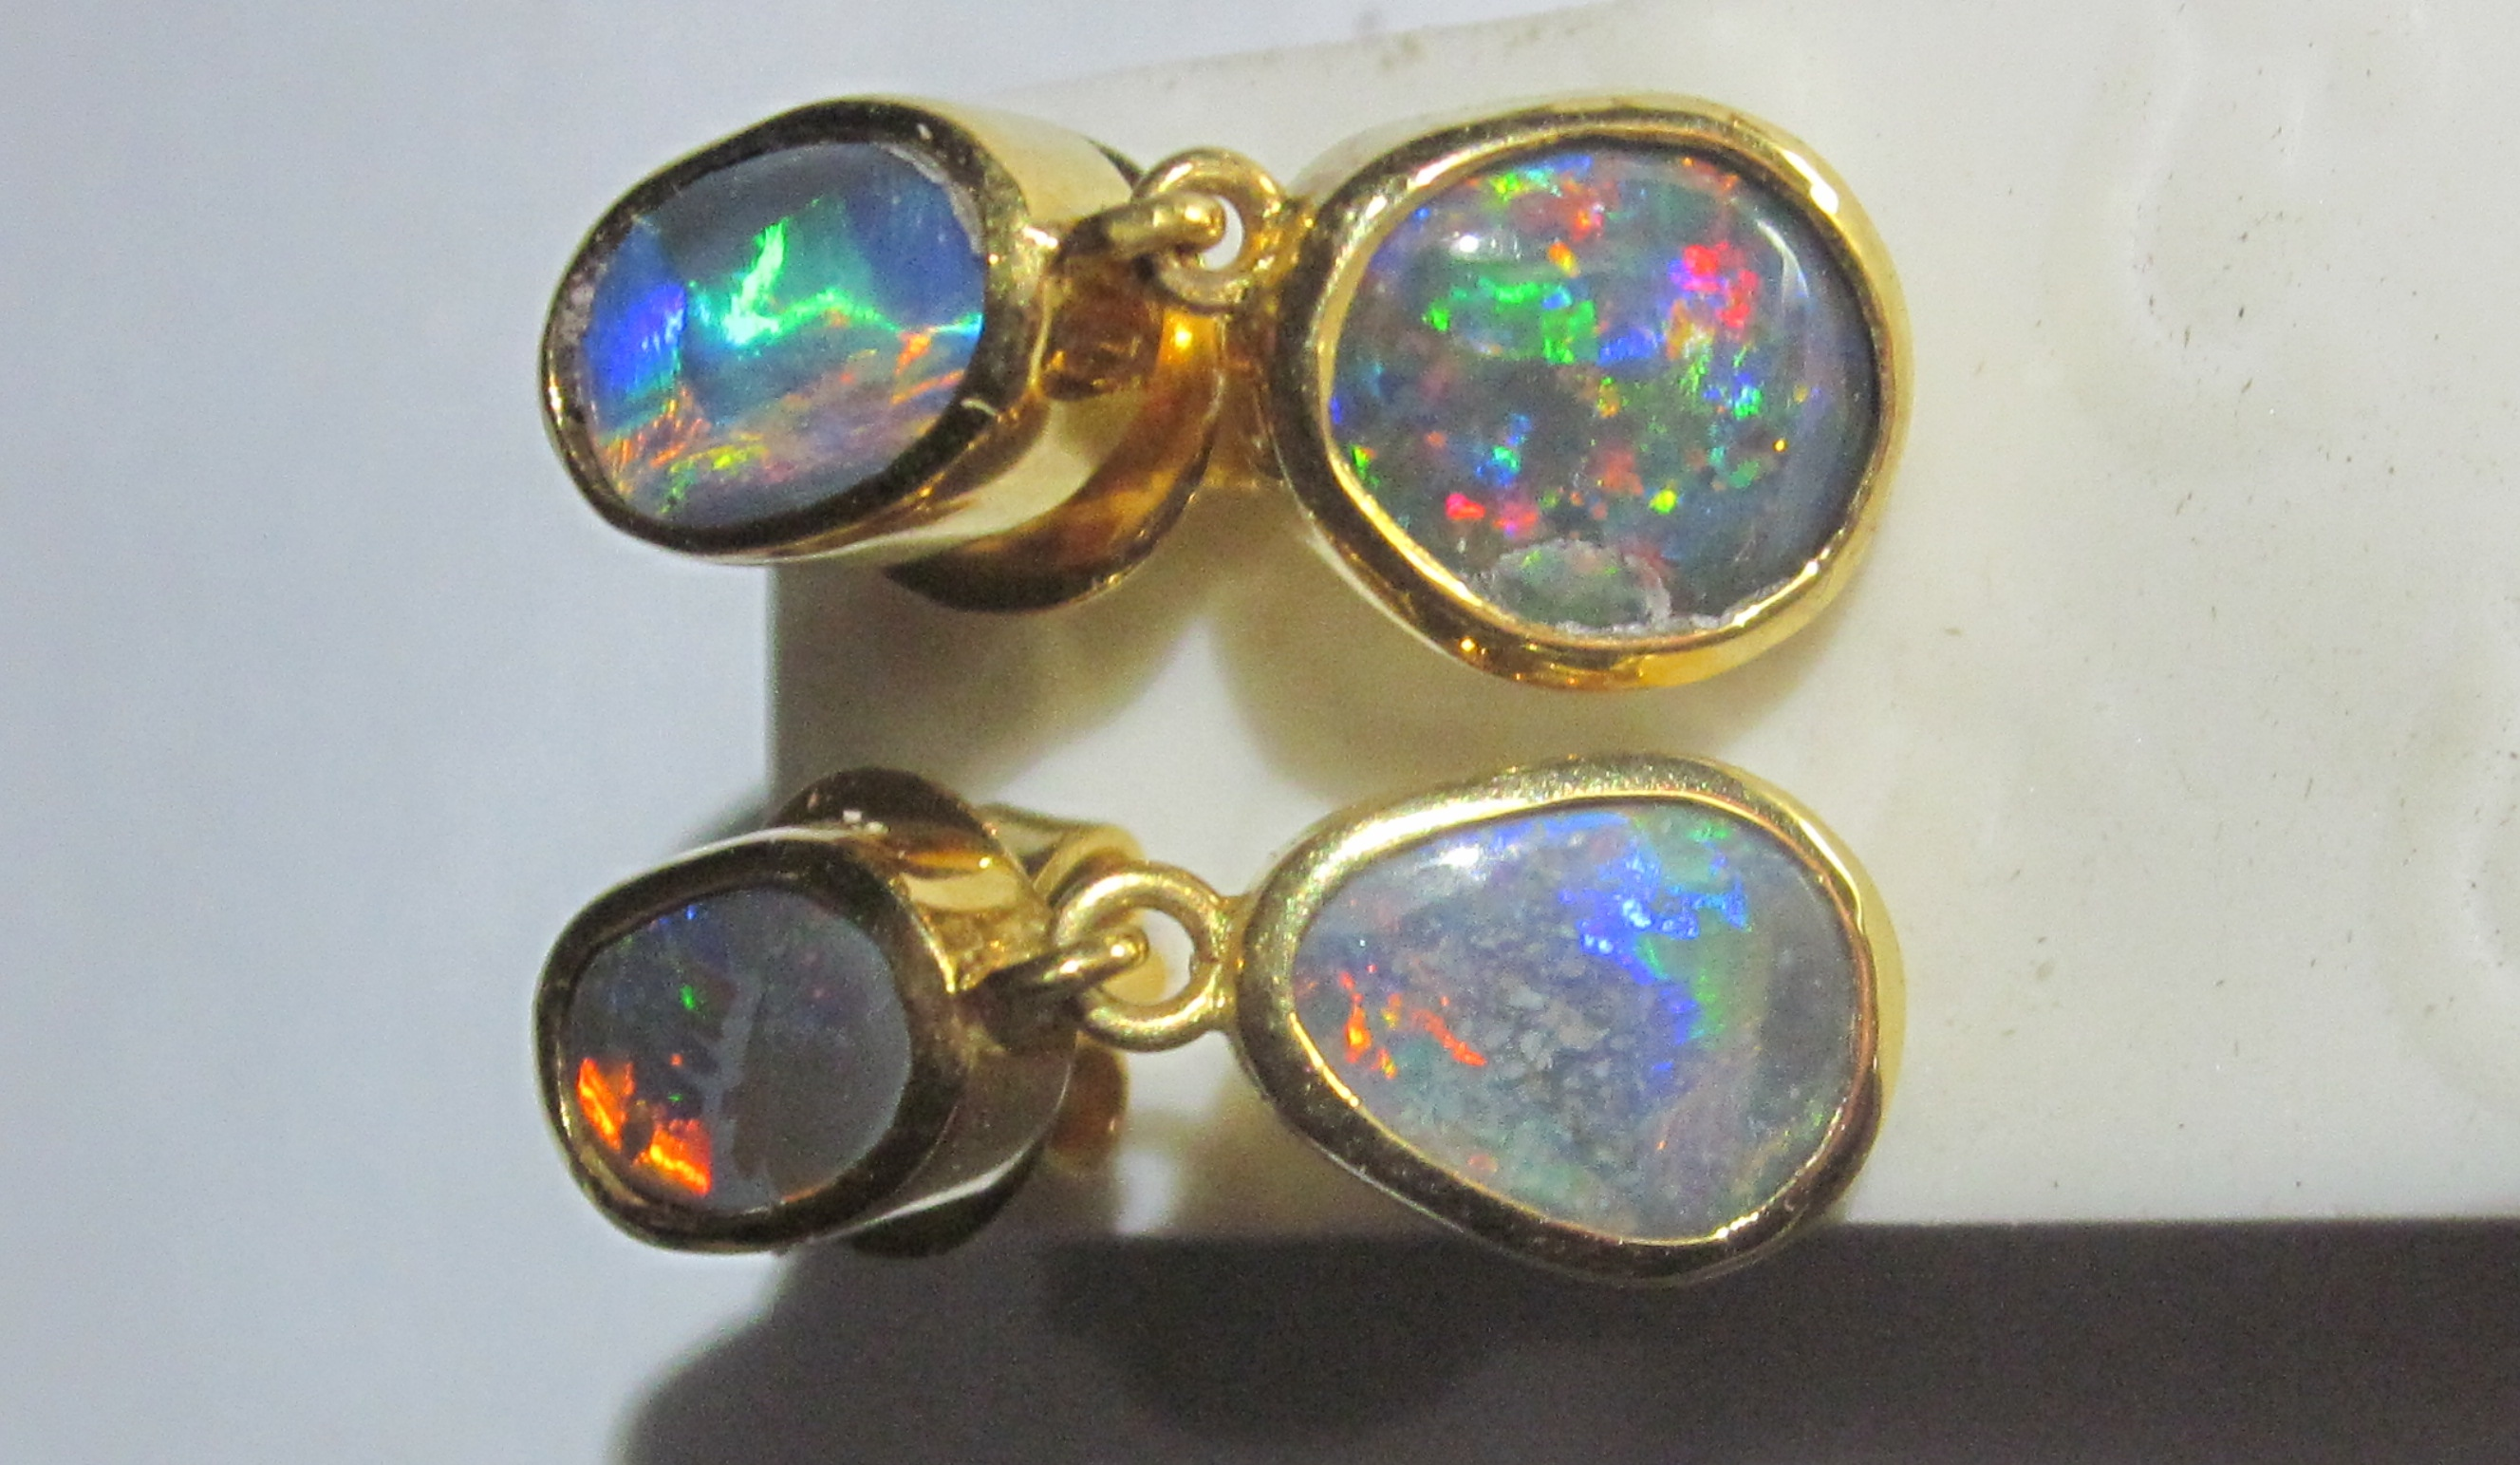 page color alternates striped create gold custom jewelry shop one unusual new eve fine york these are product with opals completely kind that original an azore s a of natural yellow cut earrings striation feature opal d play